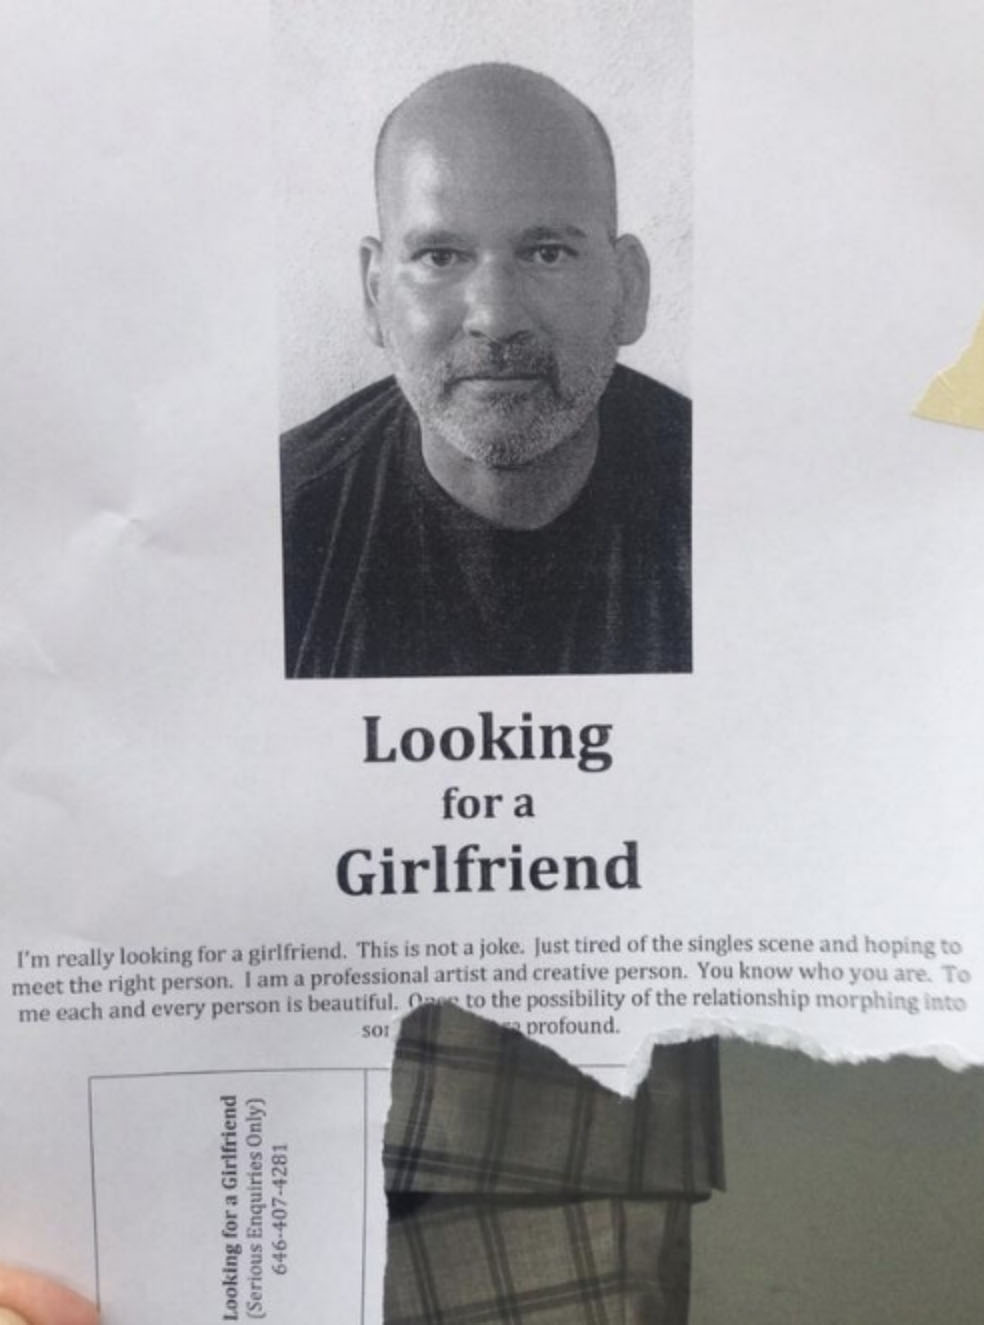 I m looking for girlfriend